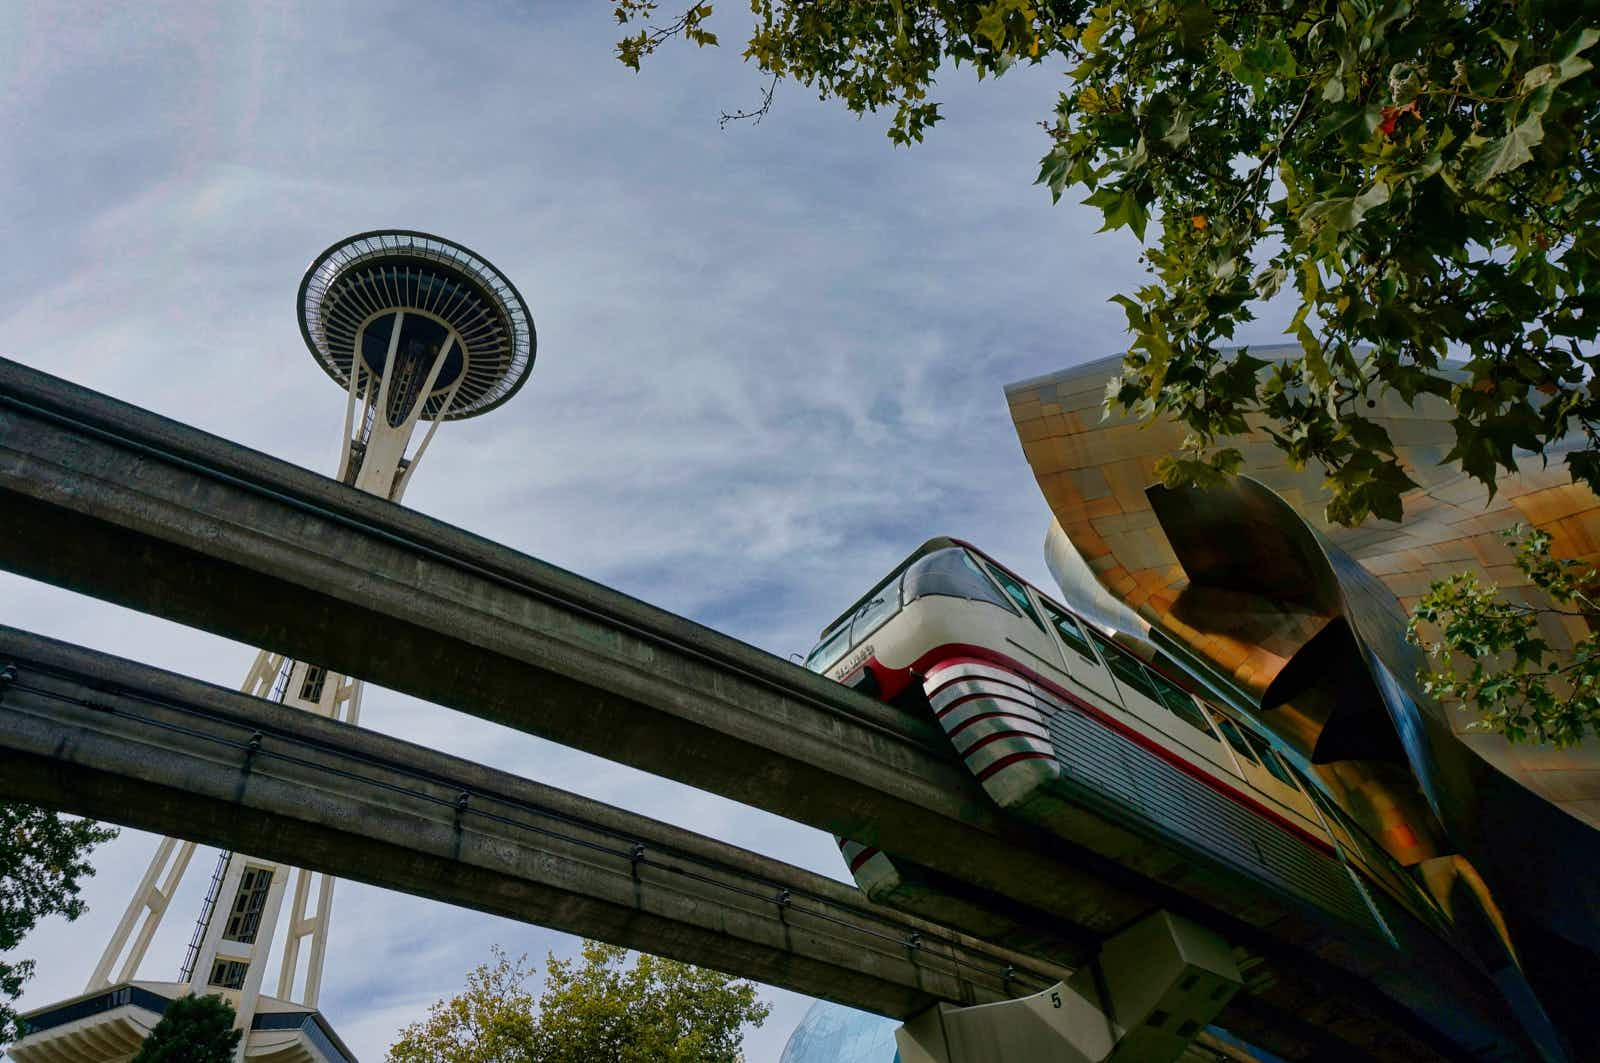 The Space Needle, with the Monorail in the foreground, were constructed for the 1962 World's Fair © Valerie Stimac / Lonely Planet